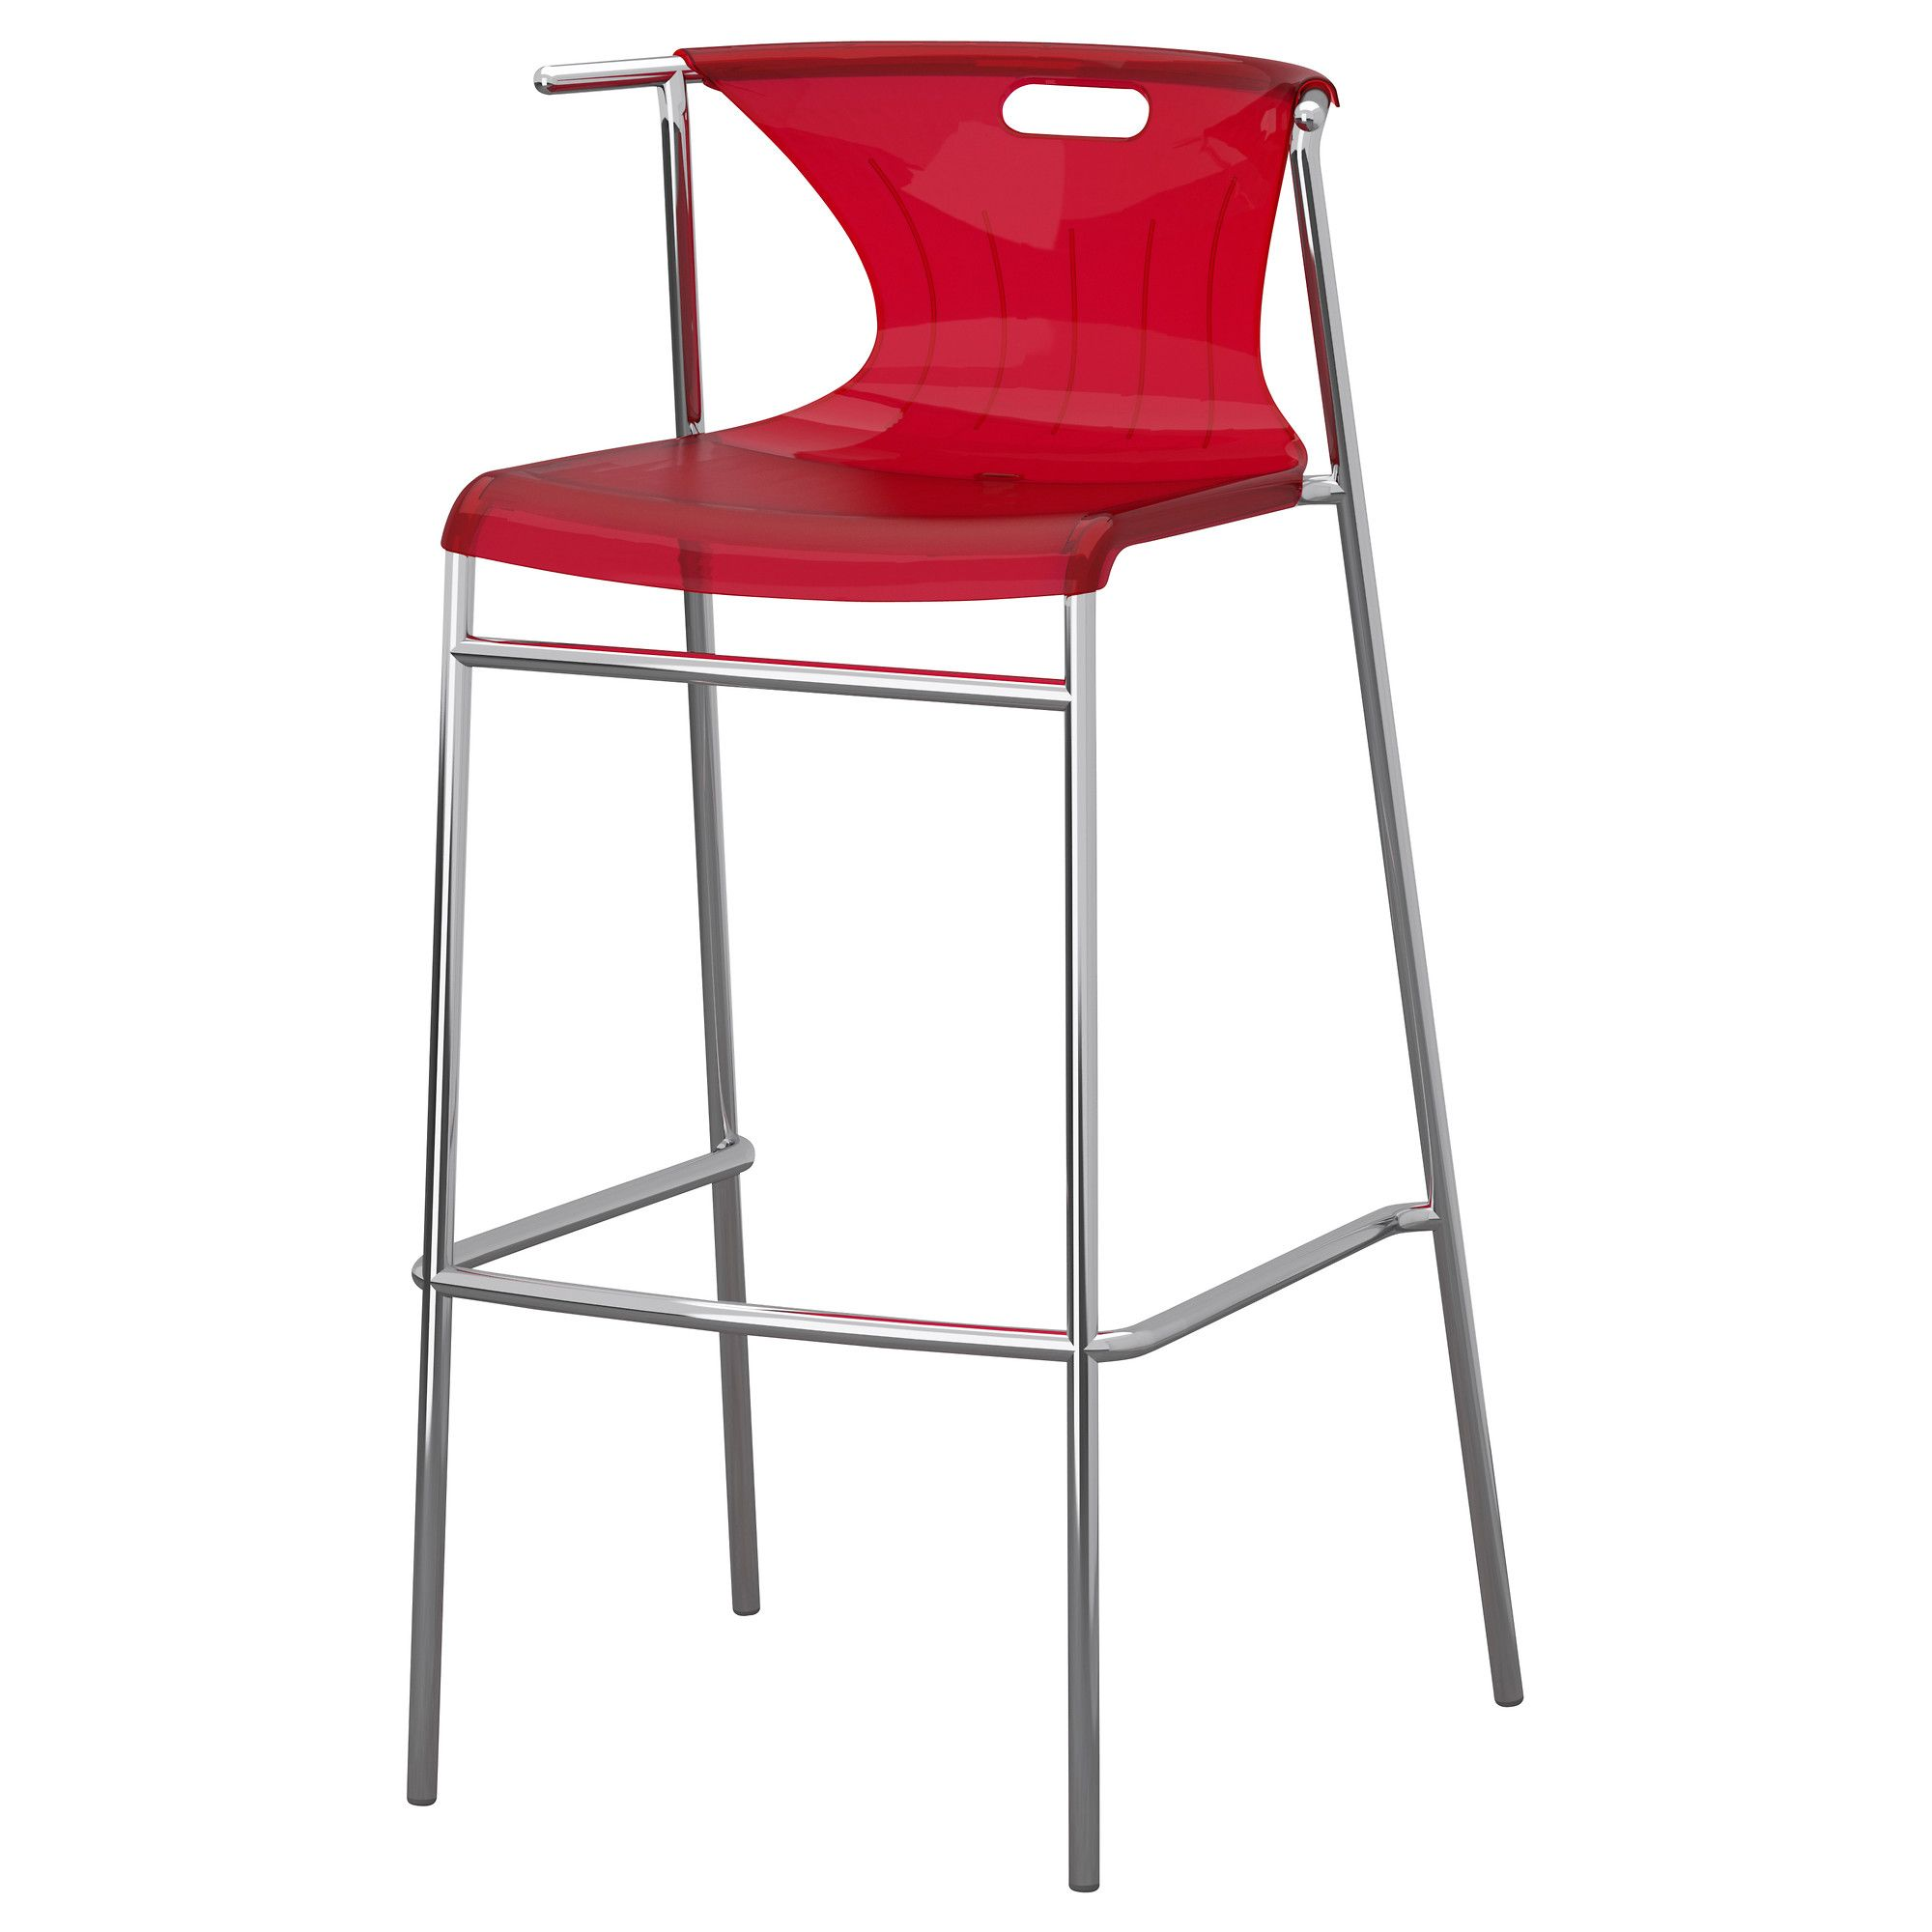 Elmer Bar Stool With Backrest Ikea Would Be Great For The Tables That Might Go In My Movie Room Heh